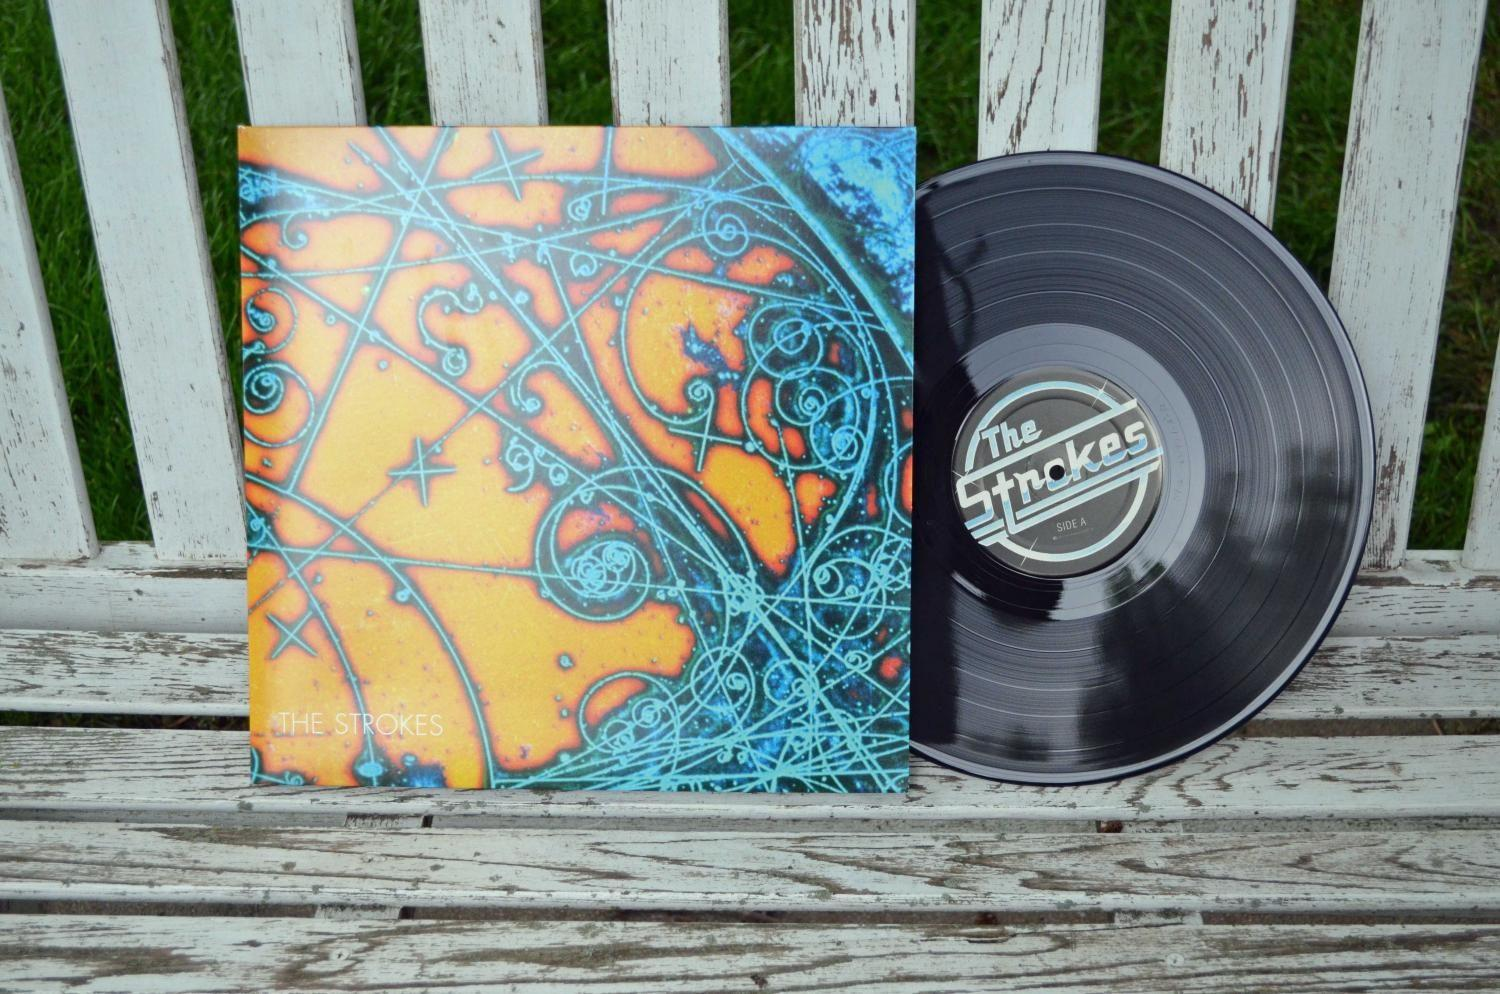 This+is+the+album+%22is+this+it%22+by+the+Strokes.+They+are+a+successful+American+rock+band.+I+highly+recommend.